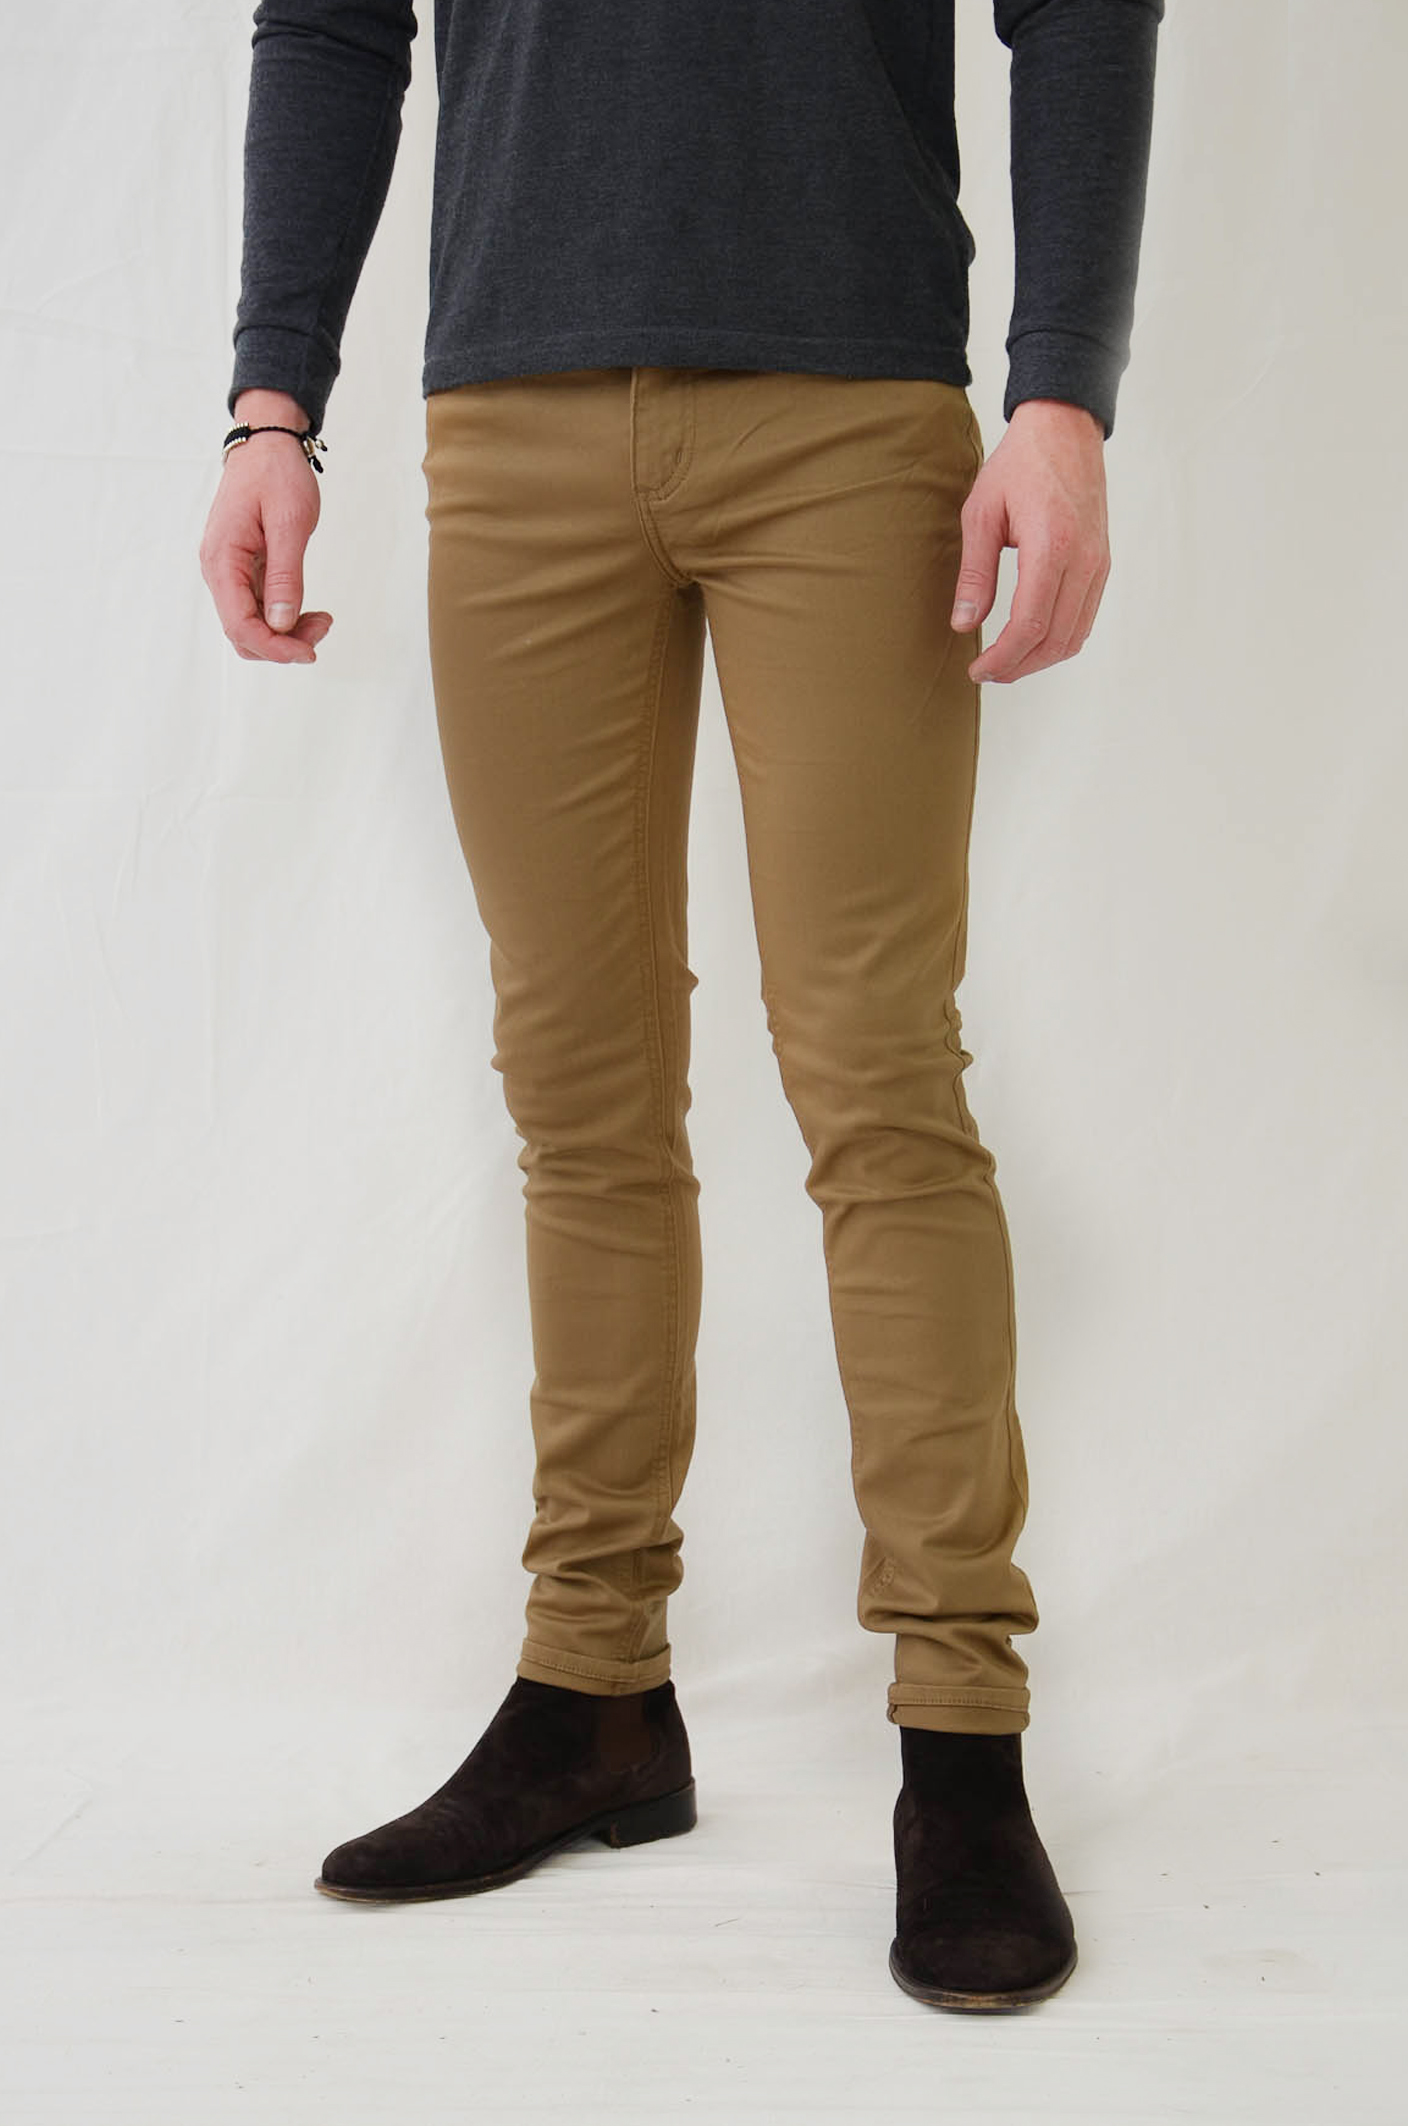 Where to get tan skinny jeans – Global fashion jeans models